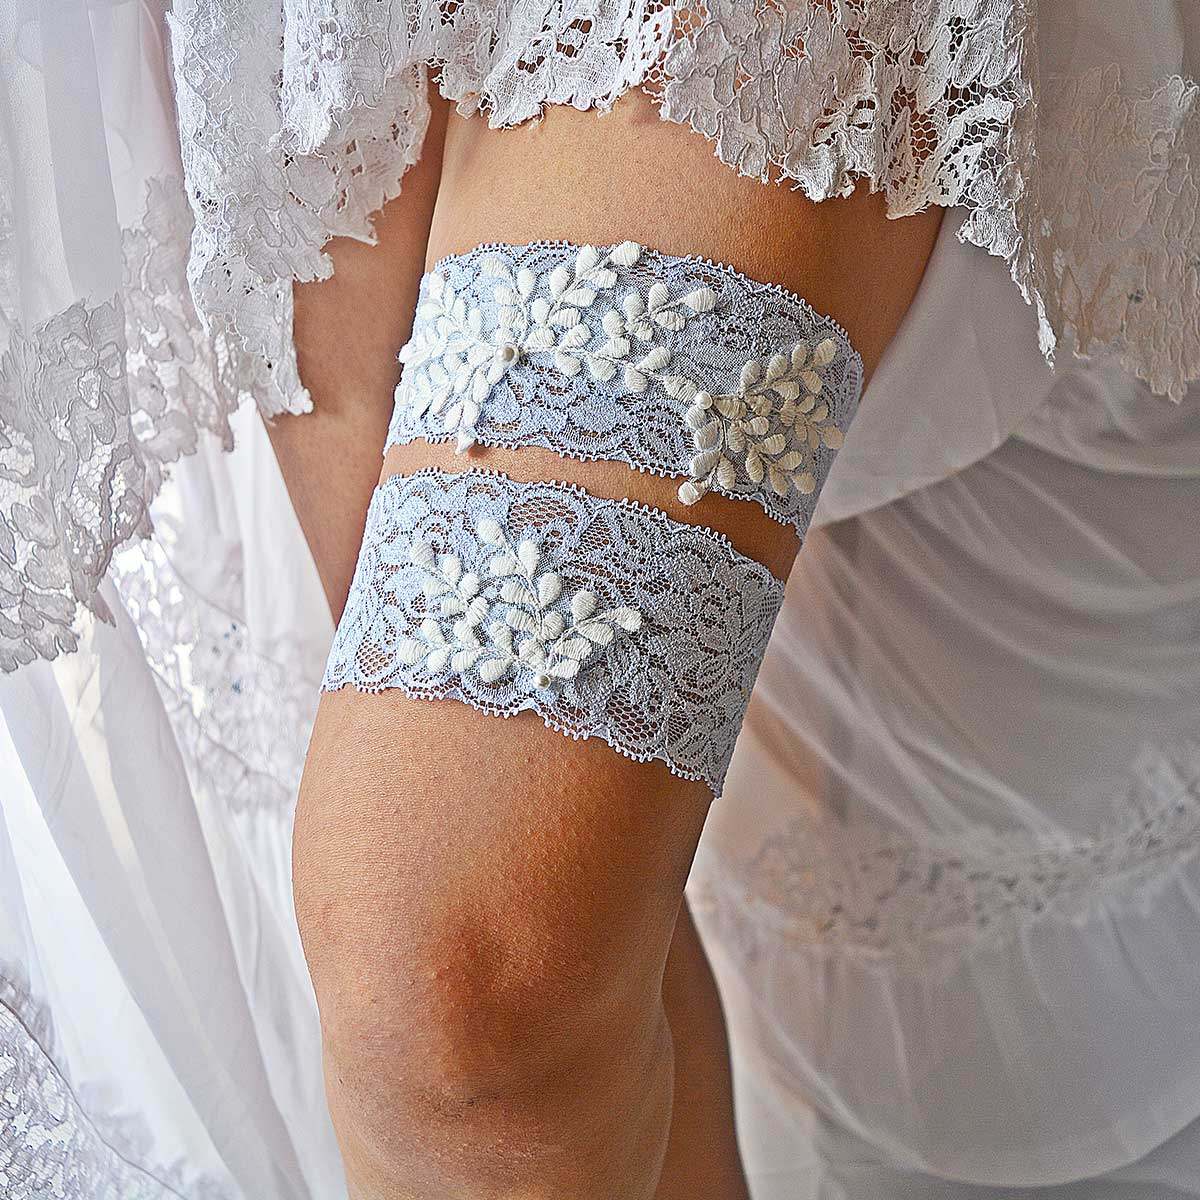 Pale Blue Bridal Garter With Pearls & White Applique Lace - Wedding Garter - SuzannaM Designs